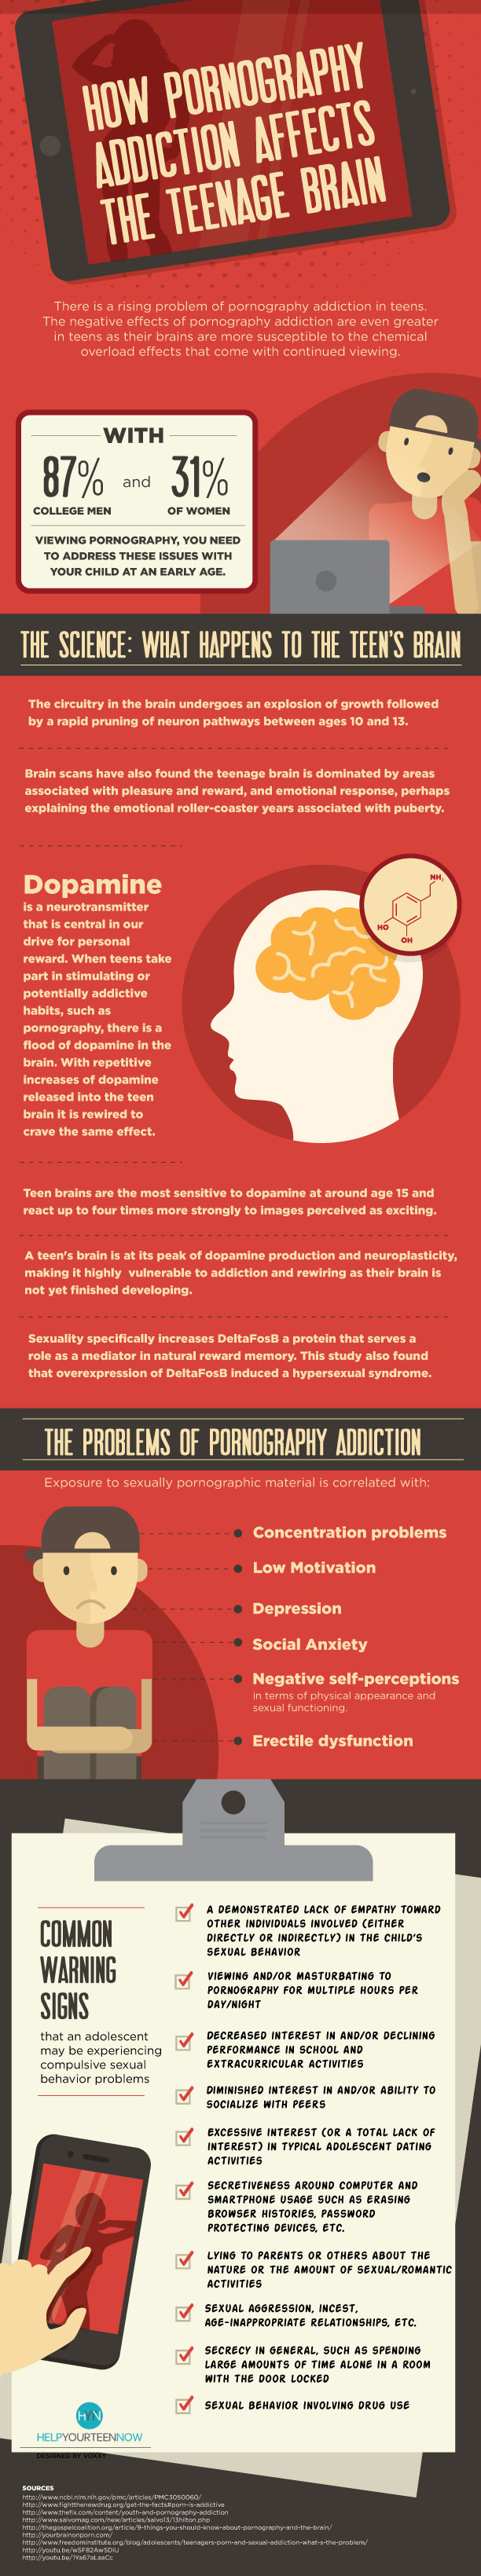 How Pornography Affects the Teenage Brain